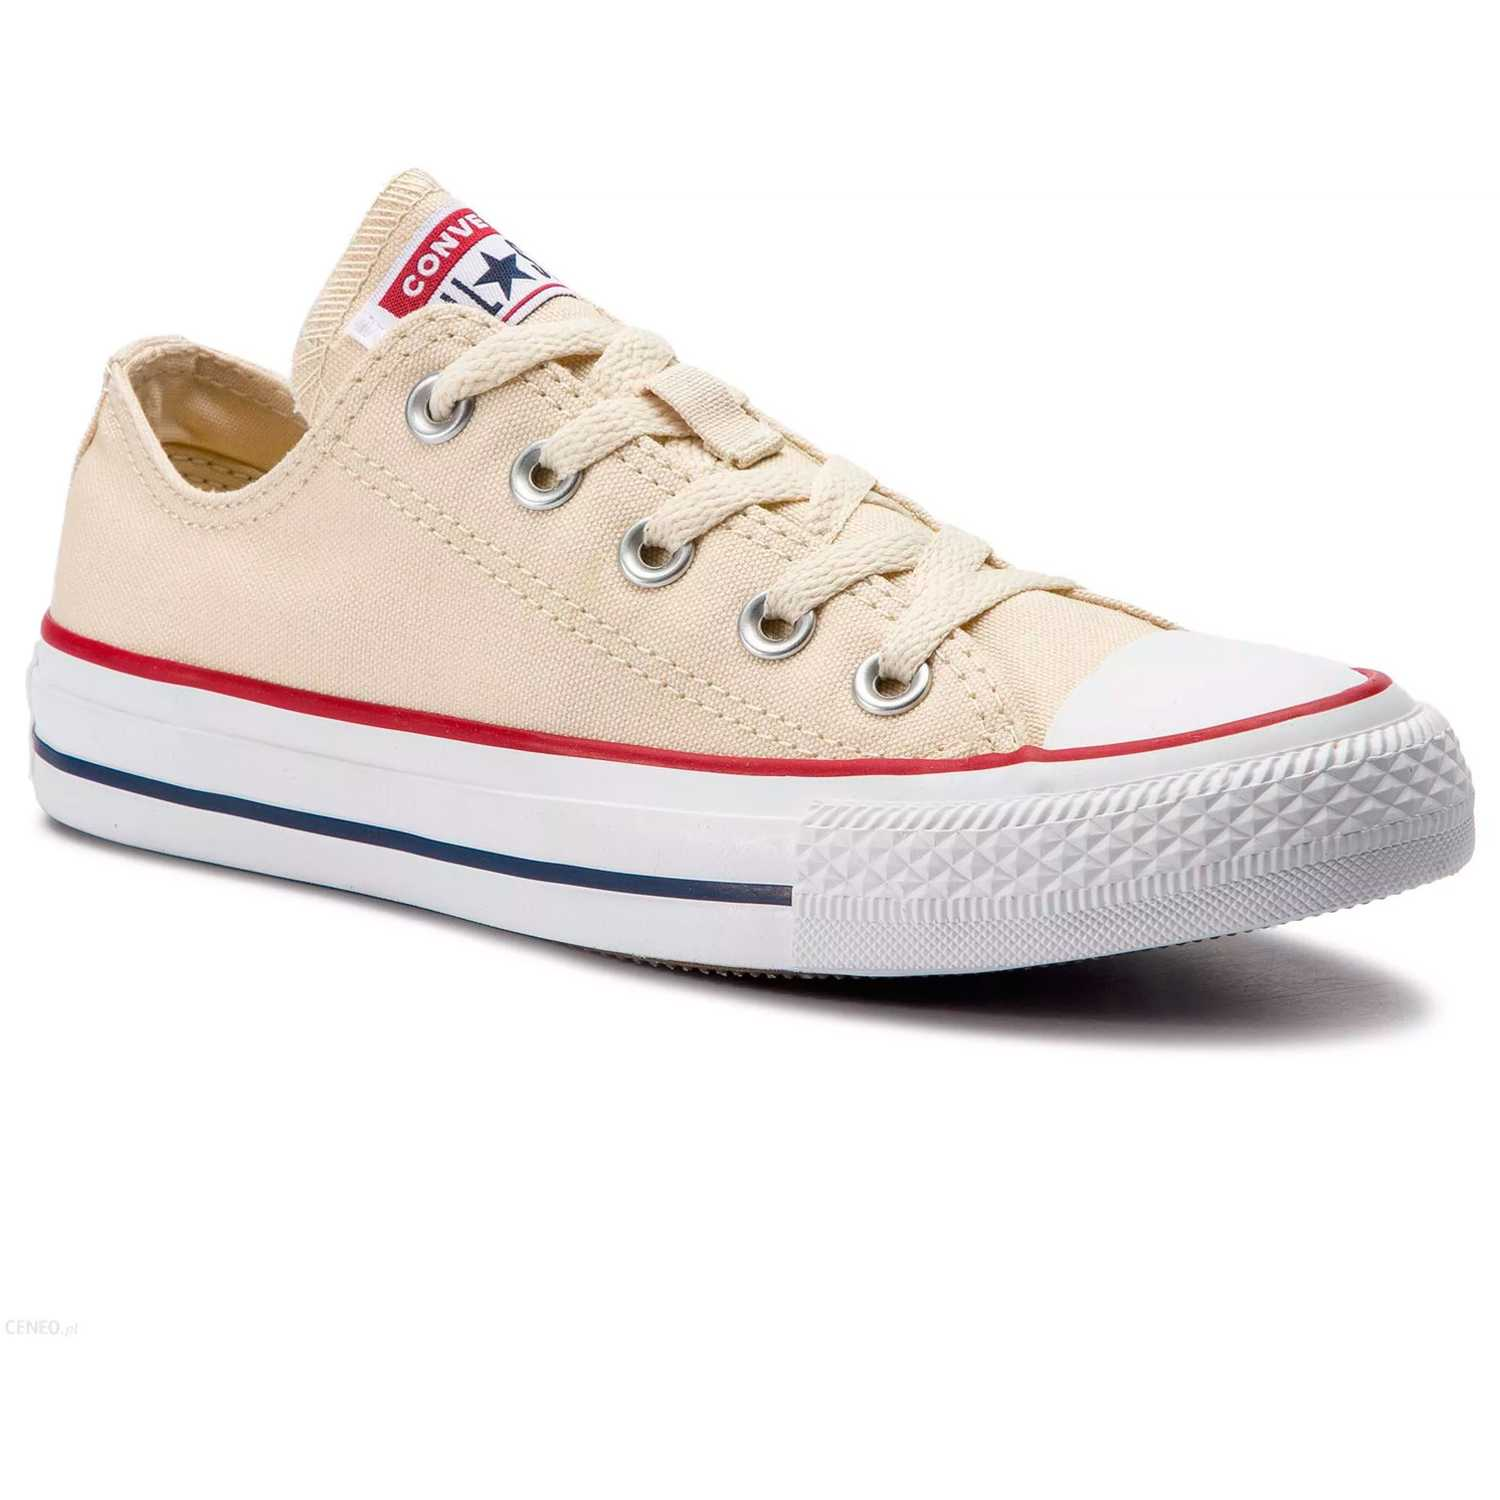 Urban de Mujer Converse Crema ct as core ox